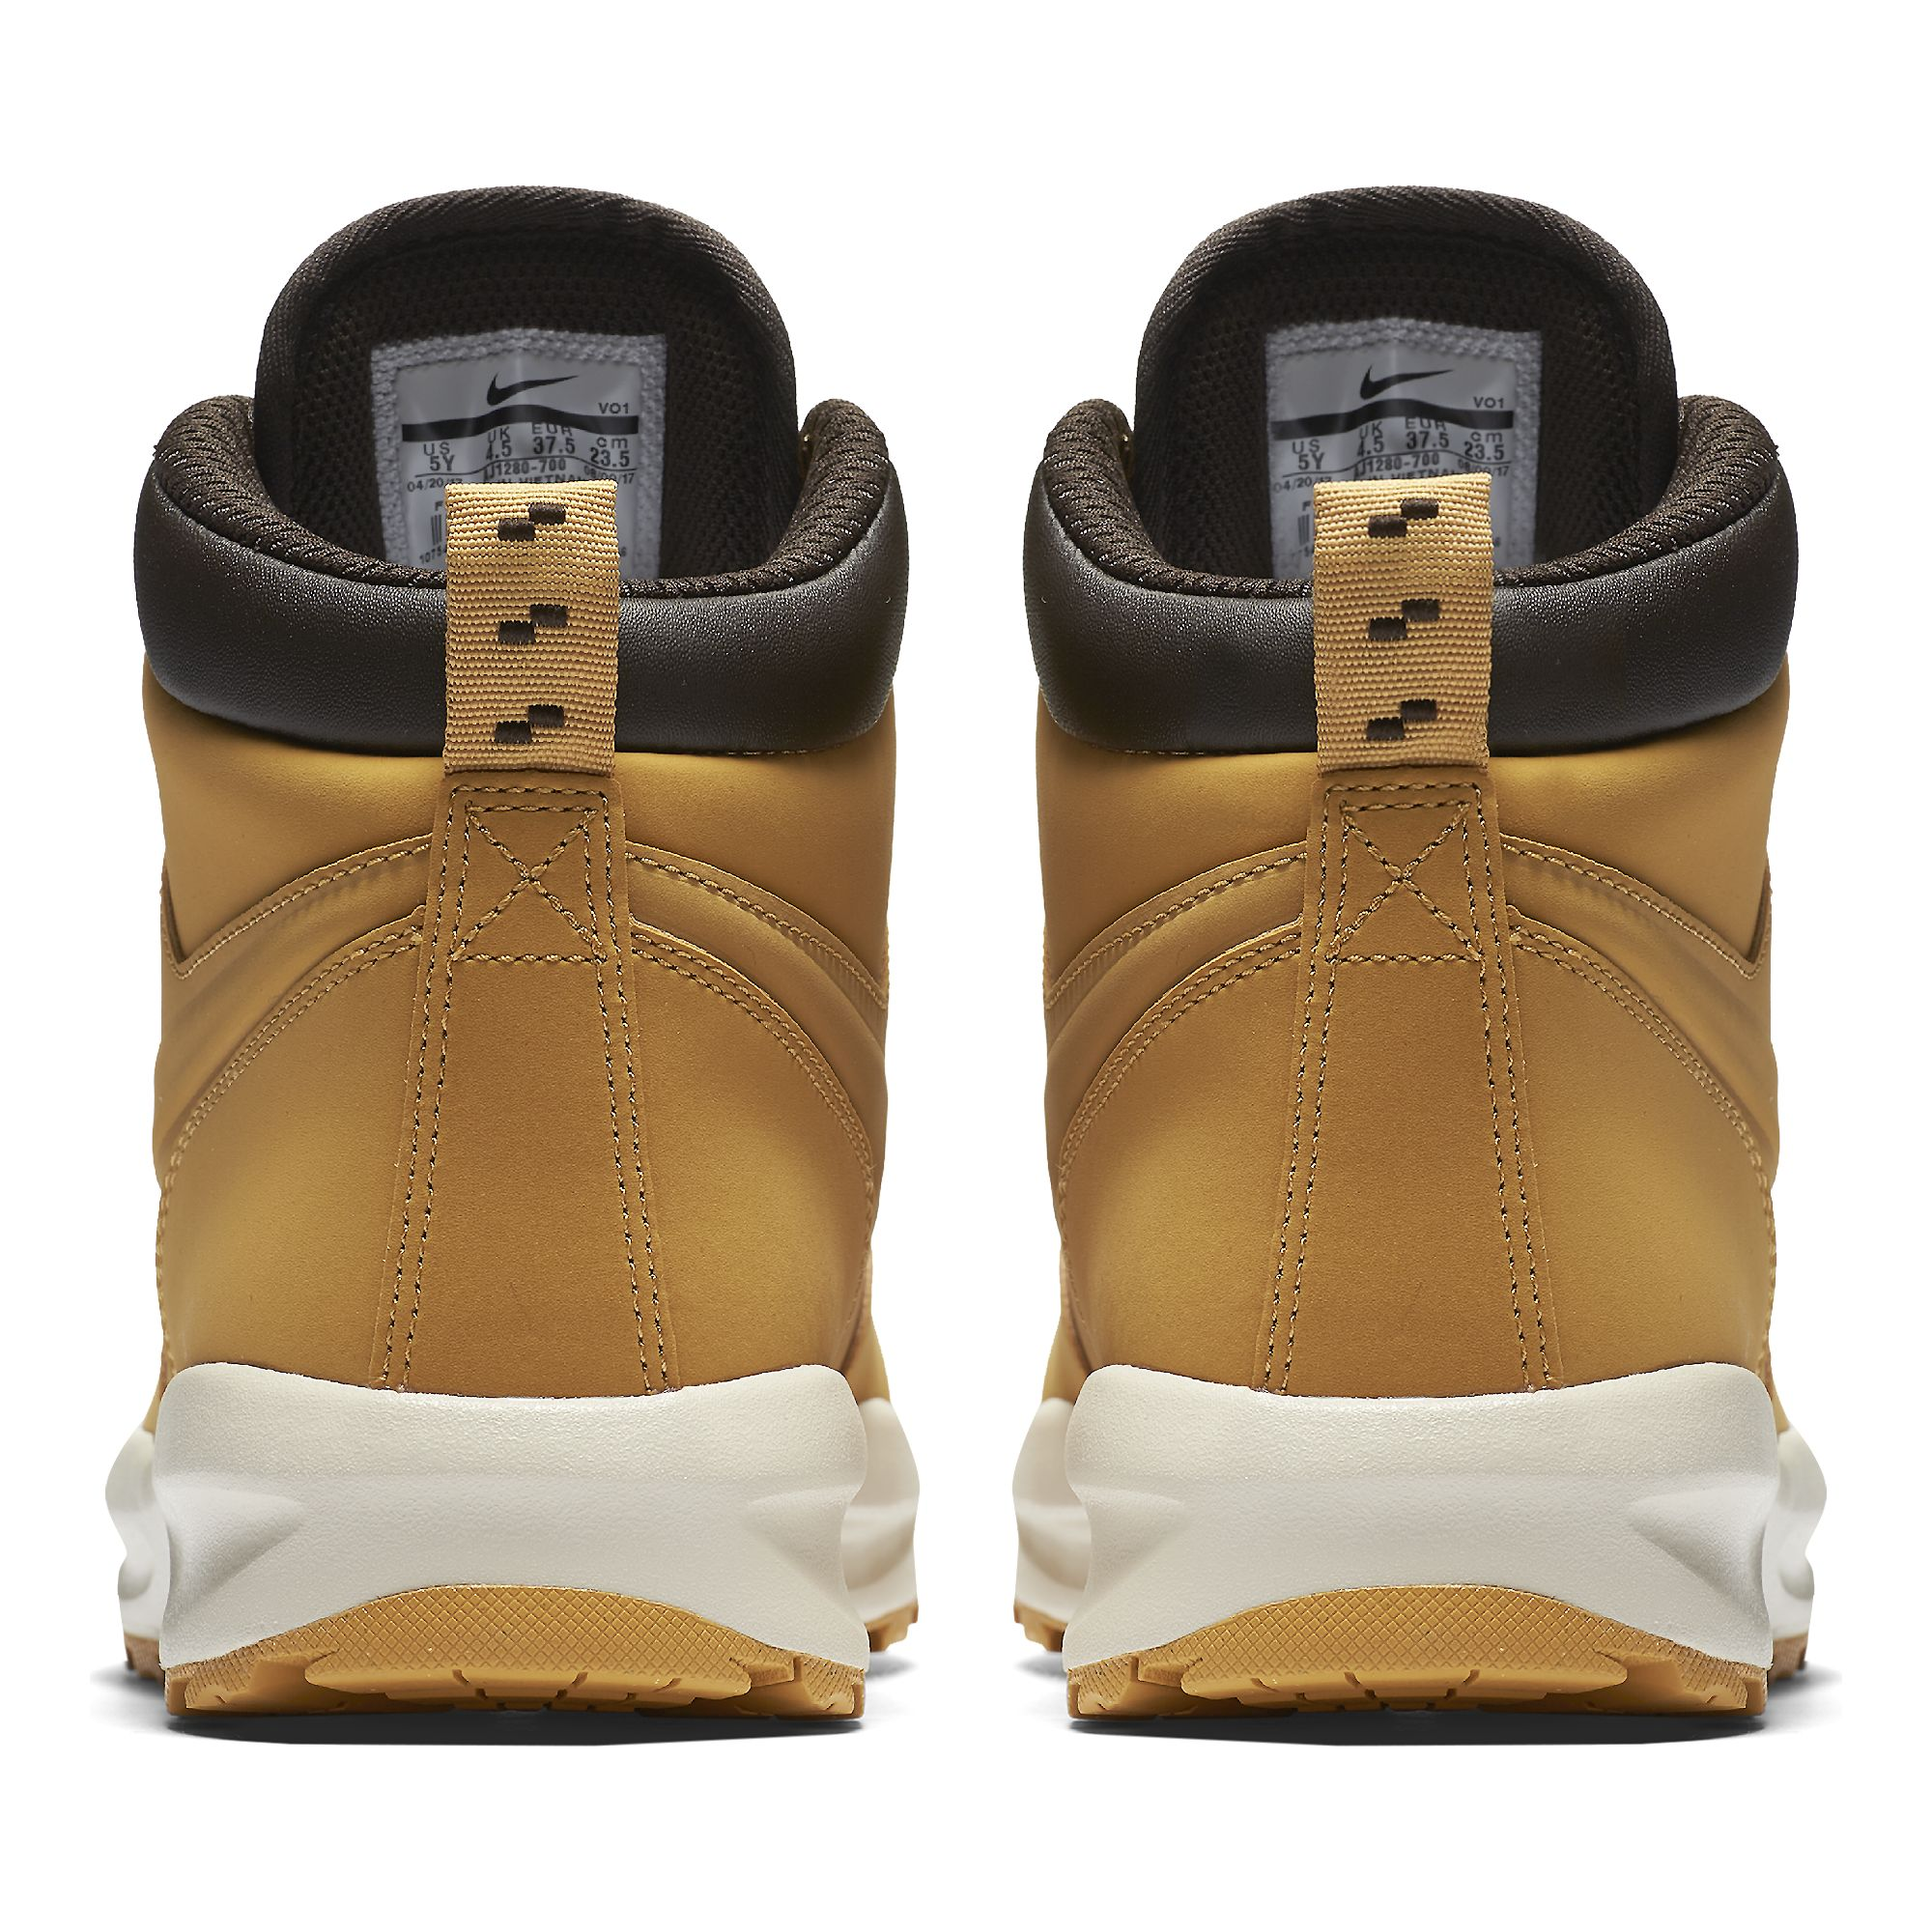 sports shoes a005b 1b2fb ... buty Nike Manoa Leather Gs AJ1280 700 ...